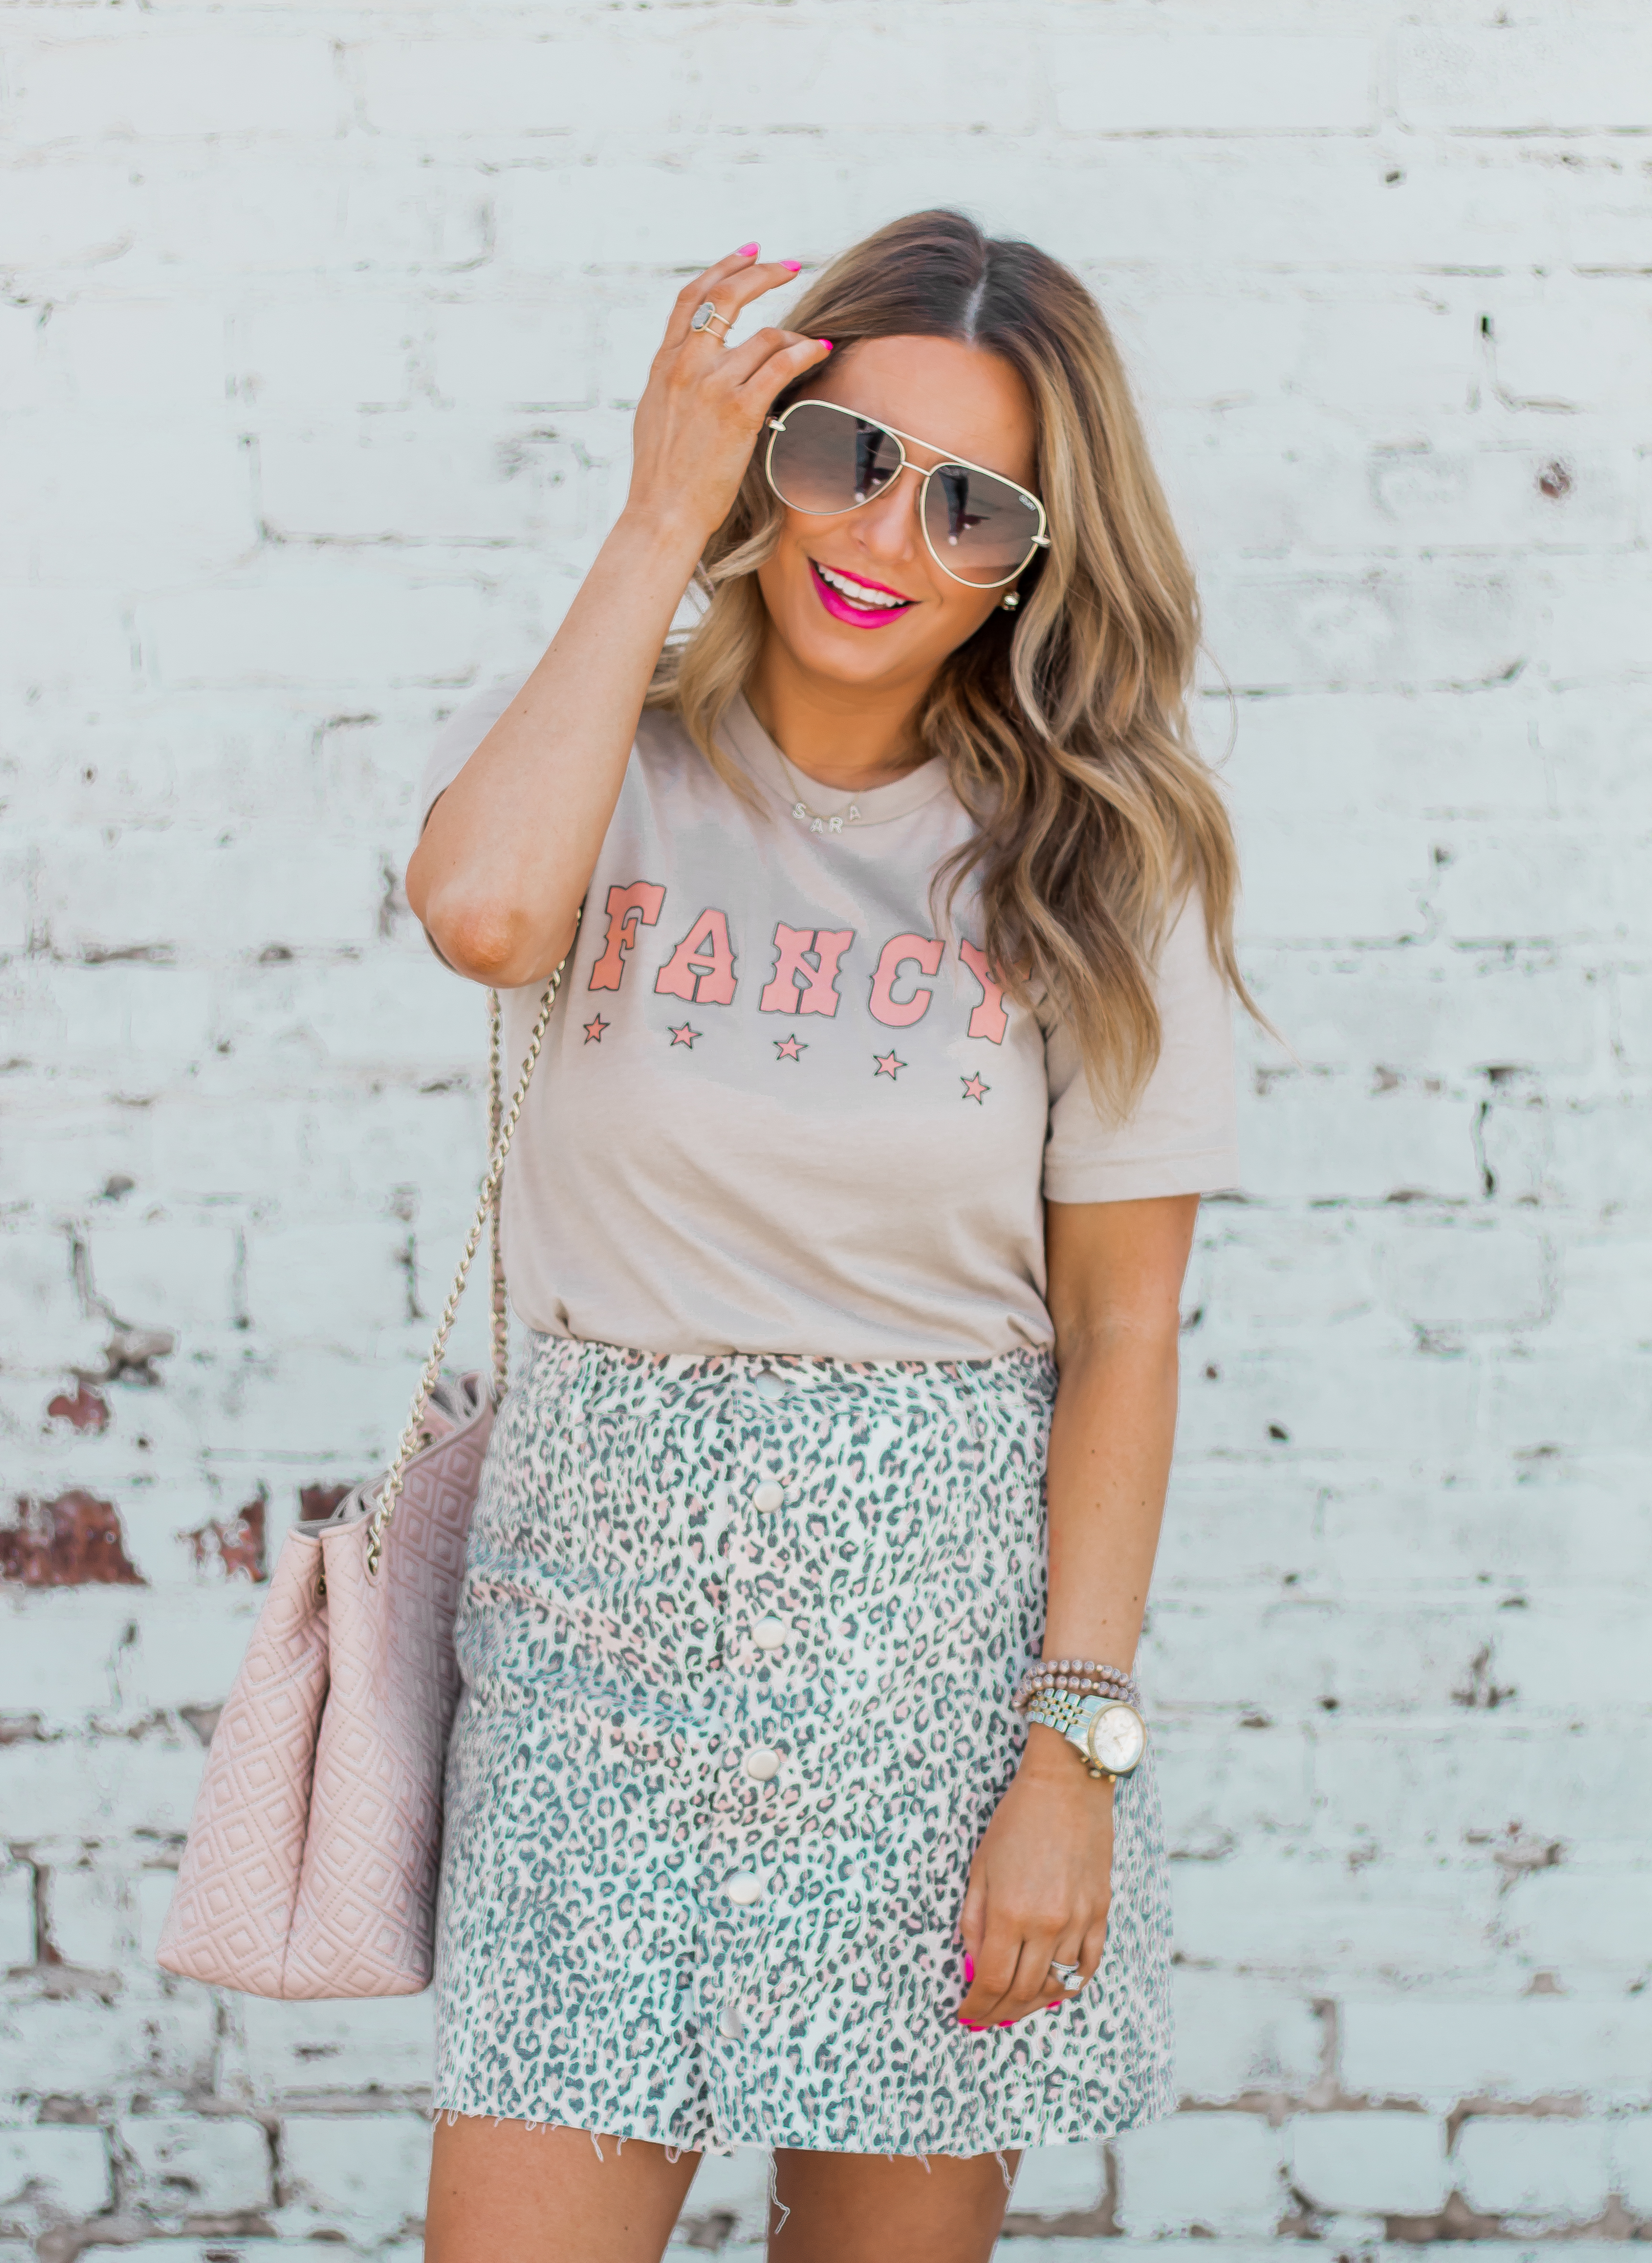 Fancy Graphic Tee-Leopard Skirt-Sugar Boutique-$250 Gift Card Giveaway-Tory Burch Fleming Bag-Quay Sunglasses-Sabby Style-Omaha Blogger-Women's Fashion-Spring Fashion-Summer Outfit-9